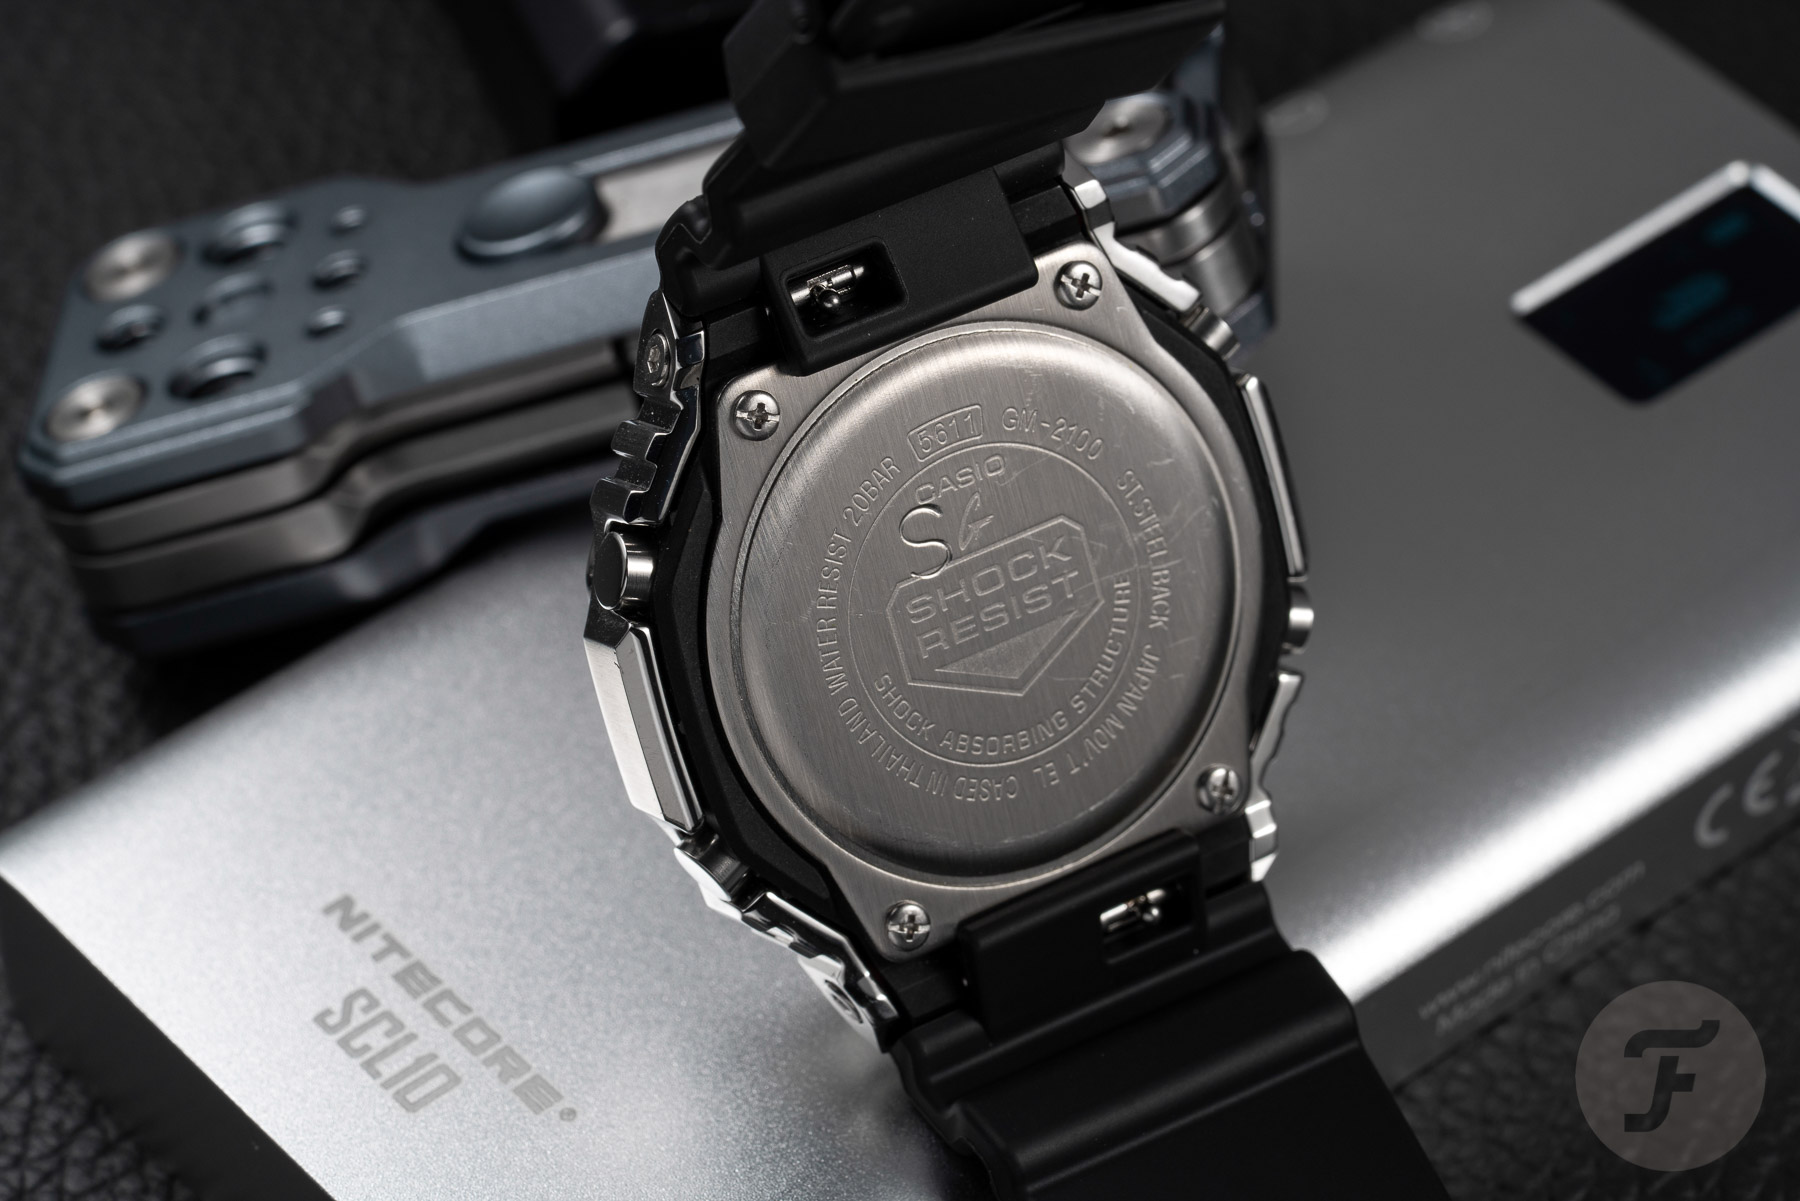 https://www.casio-europe.com/euro/products/watches/g-shock/gm-2100-1aer/